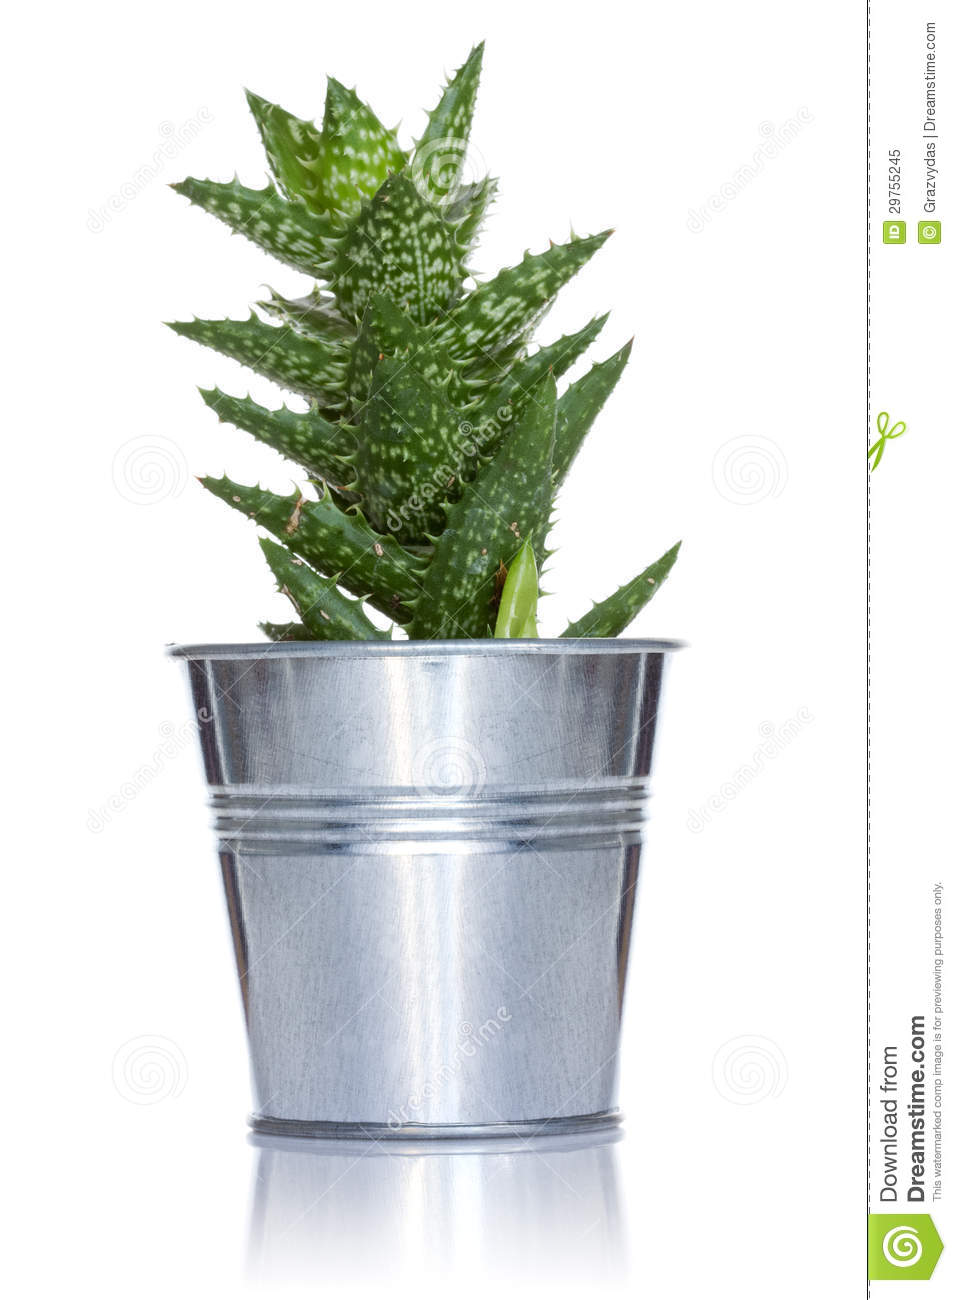 cactus in a metal pot stock image  image of spike  growing